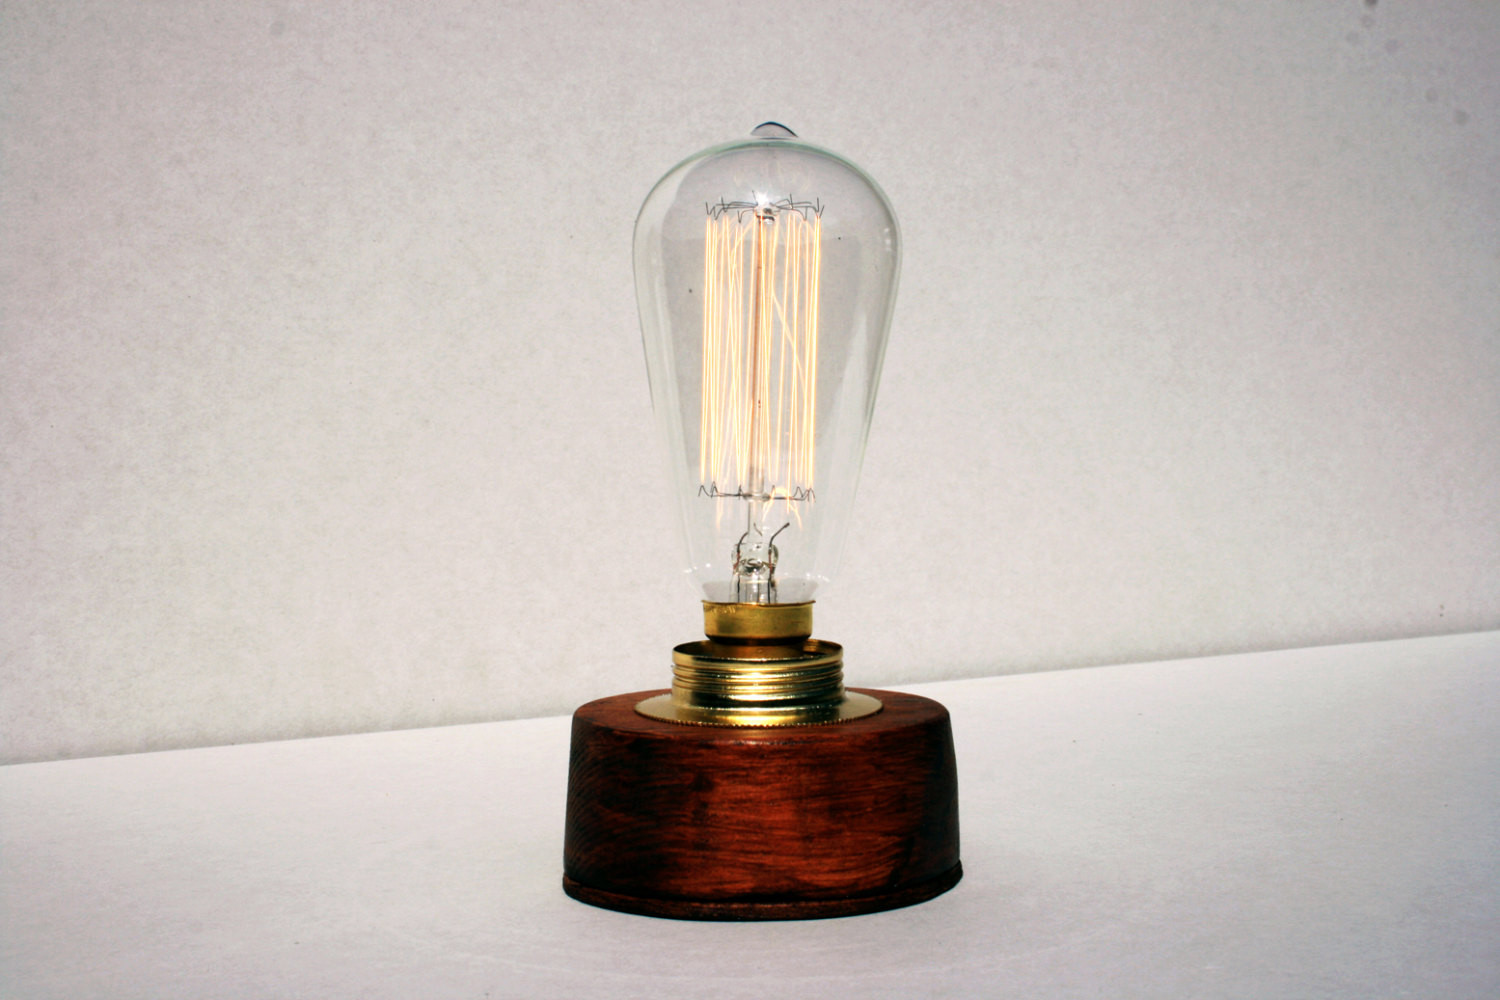 Best ideas about Edison Desk Lamp . Save or Pin The Edison Table Lamp Now.